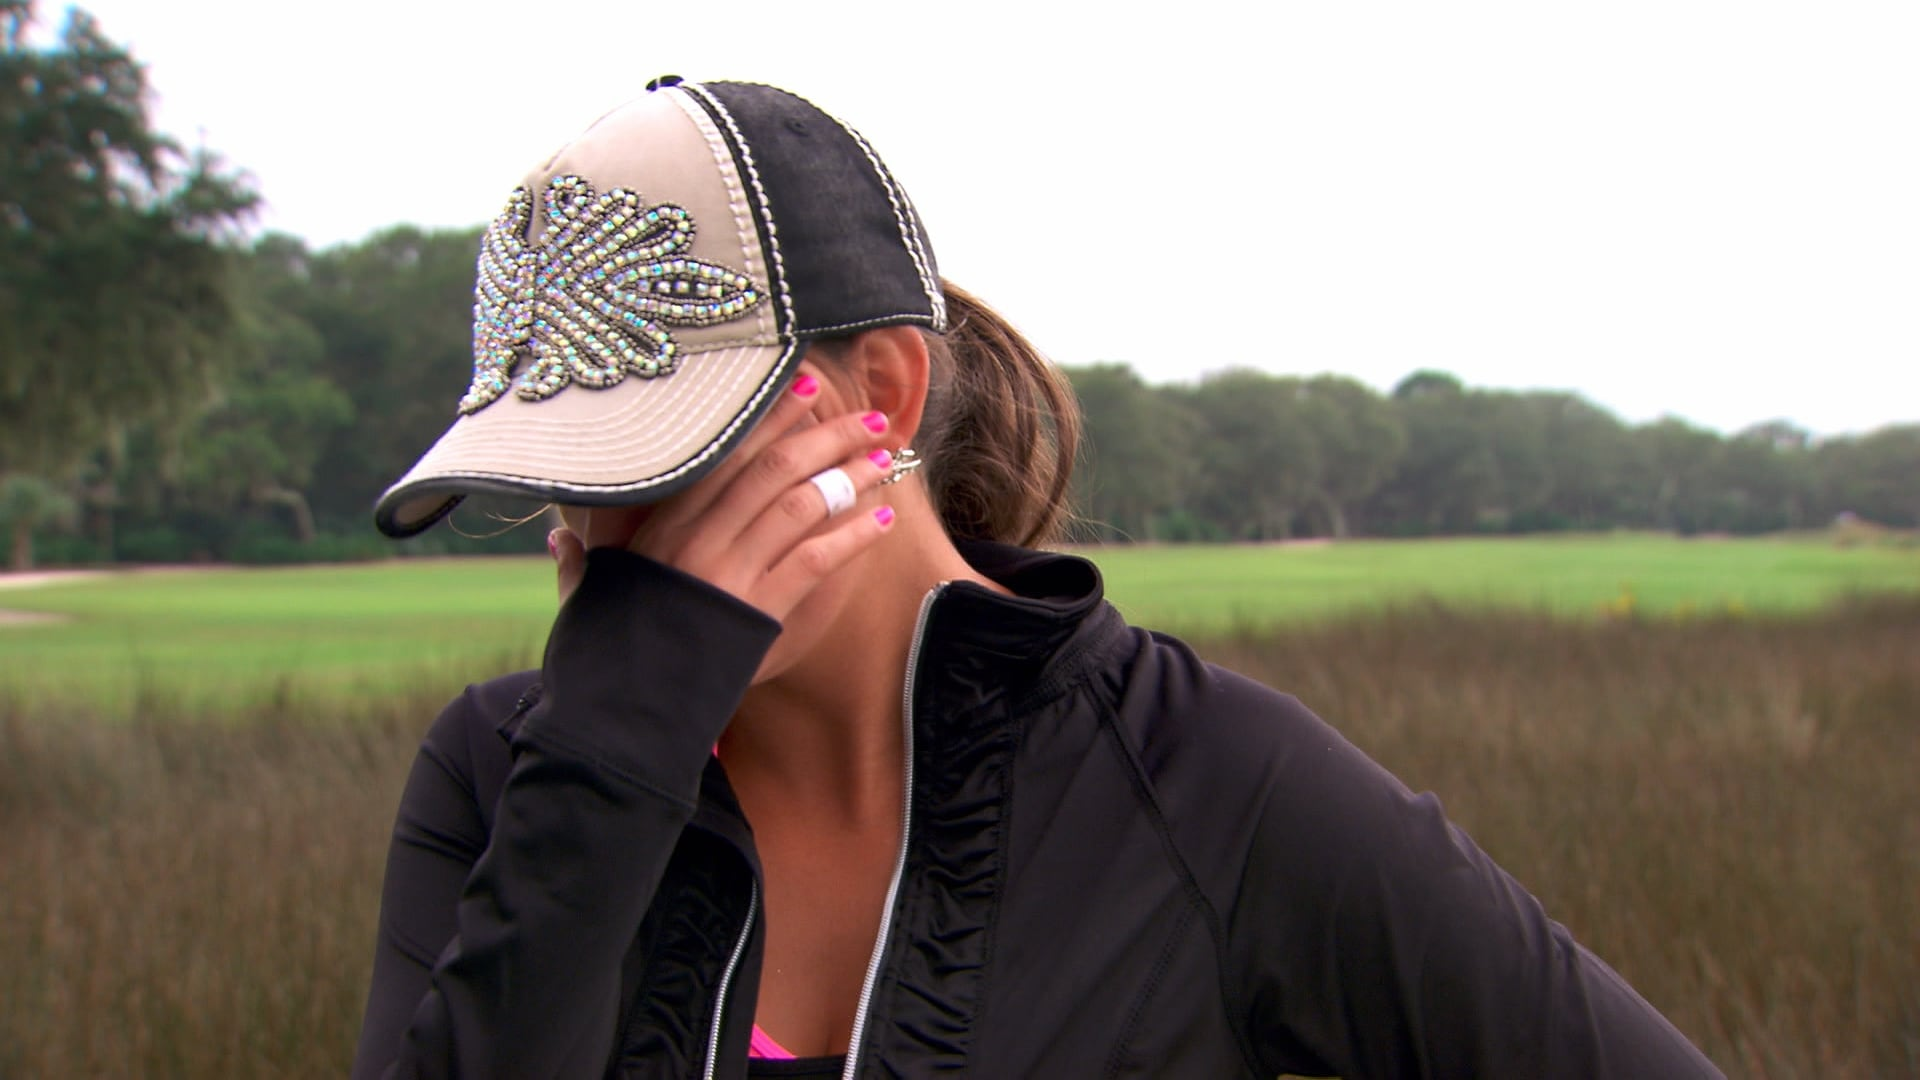 Courtney Coleman Big Break Elimination Interview | Golf ...